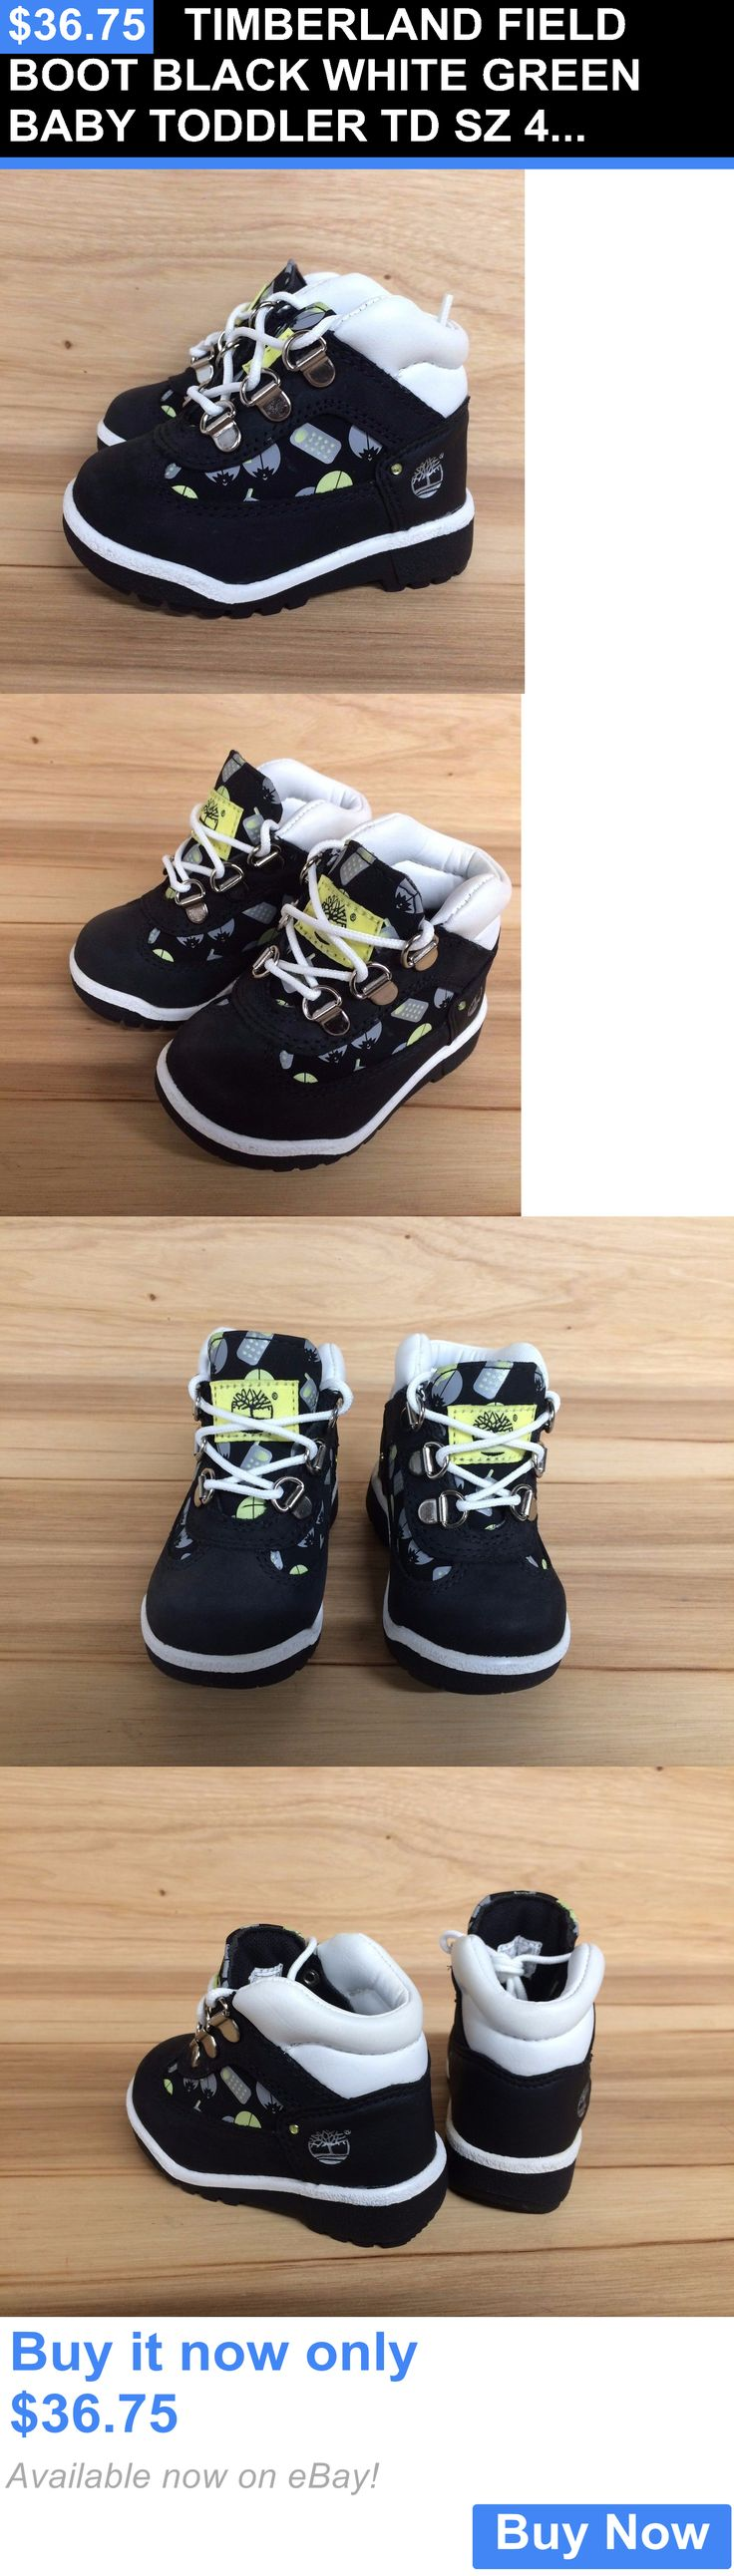 Infant Shoes: Timberland Field Boot Black White Green Baby Toddler Td Sz 4-12 25872 L BUY IT NOW ONLY: $36.75